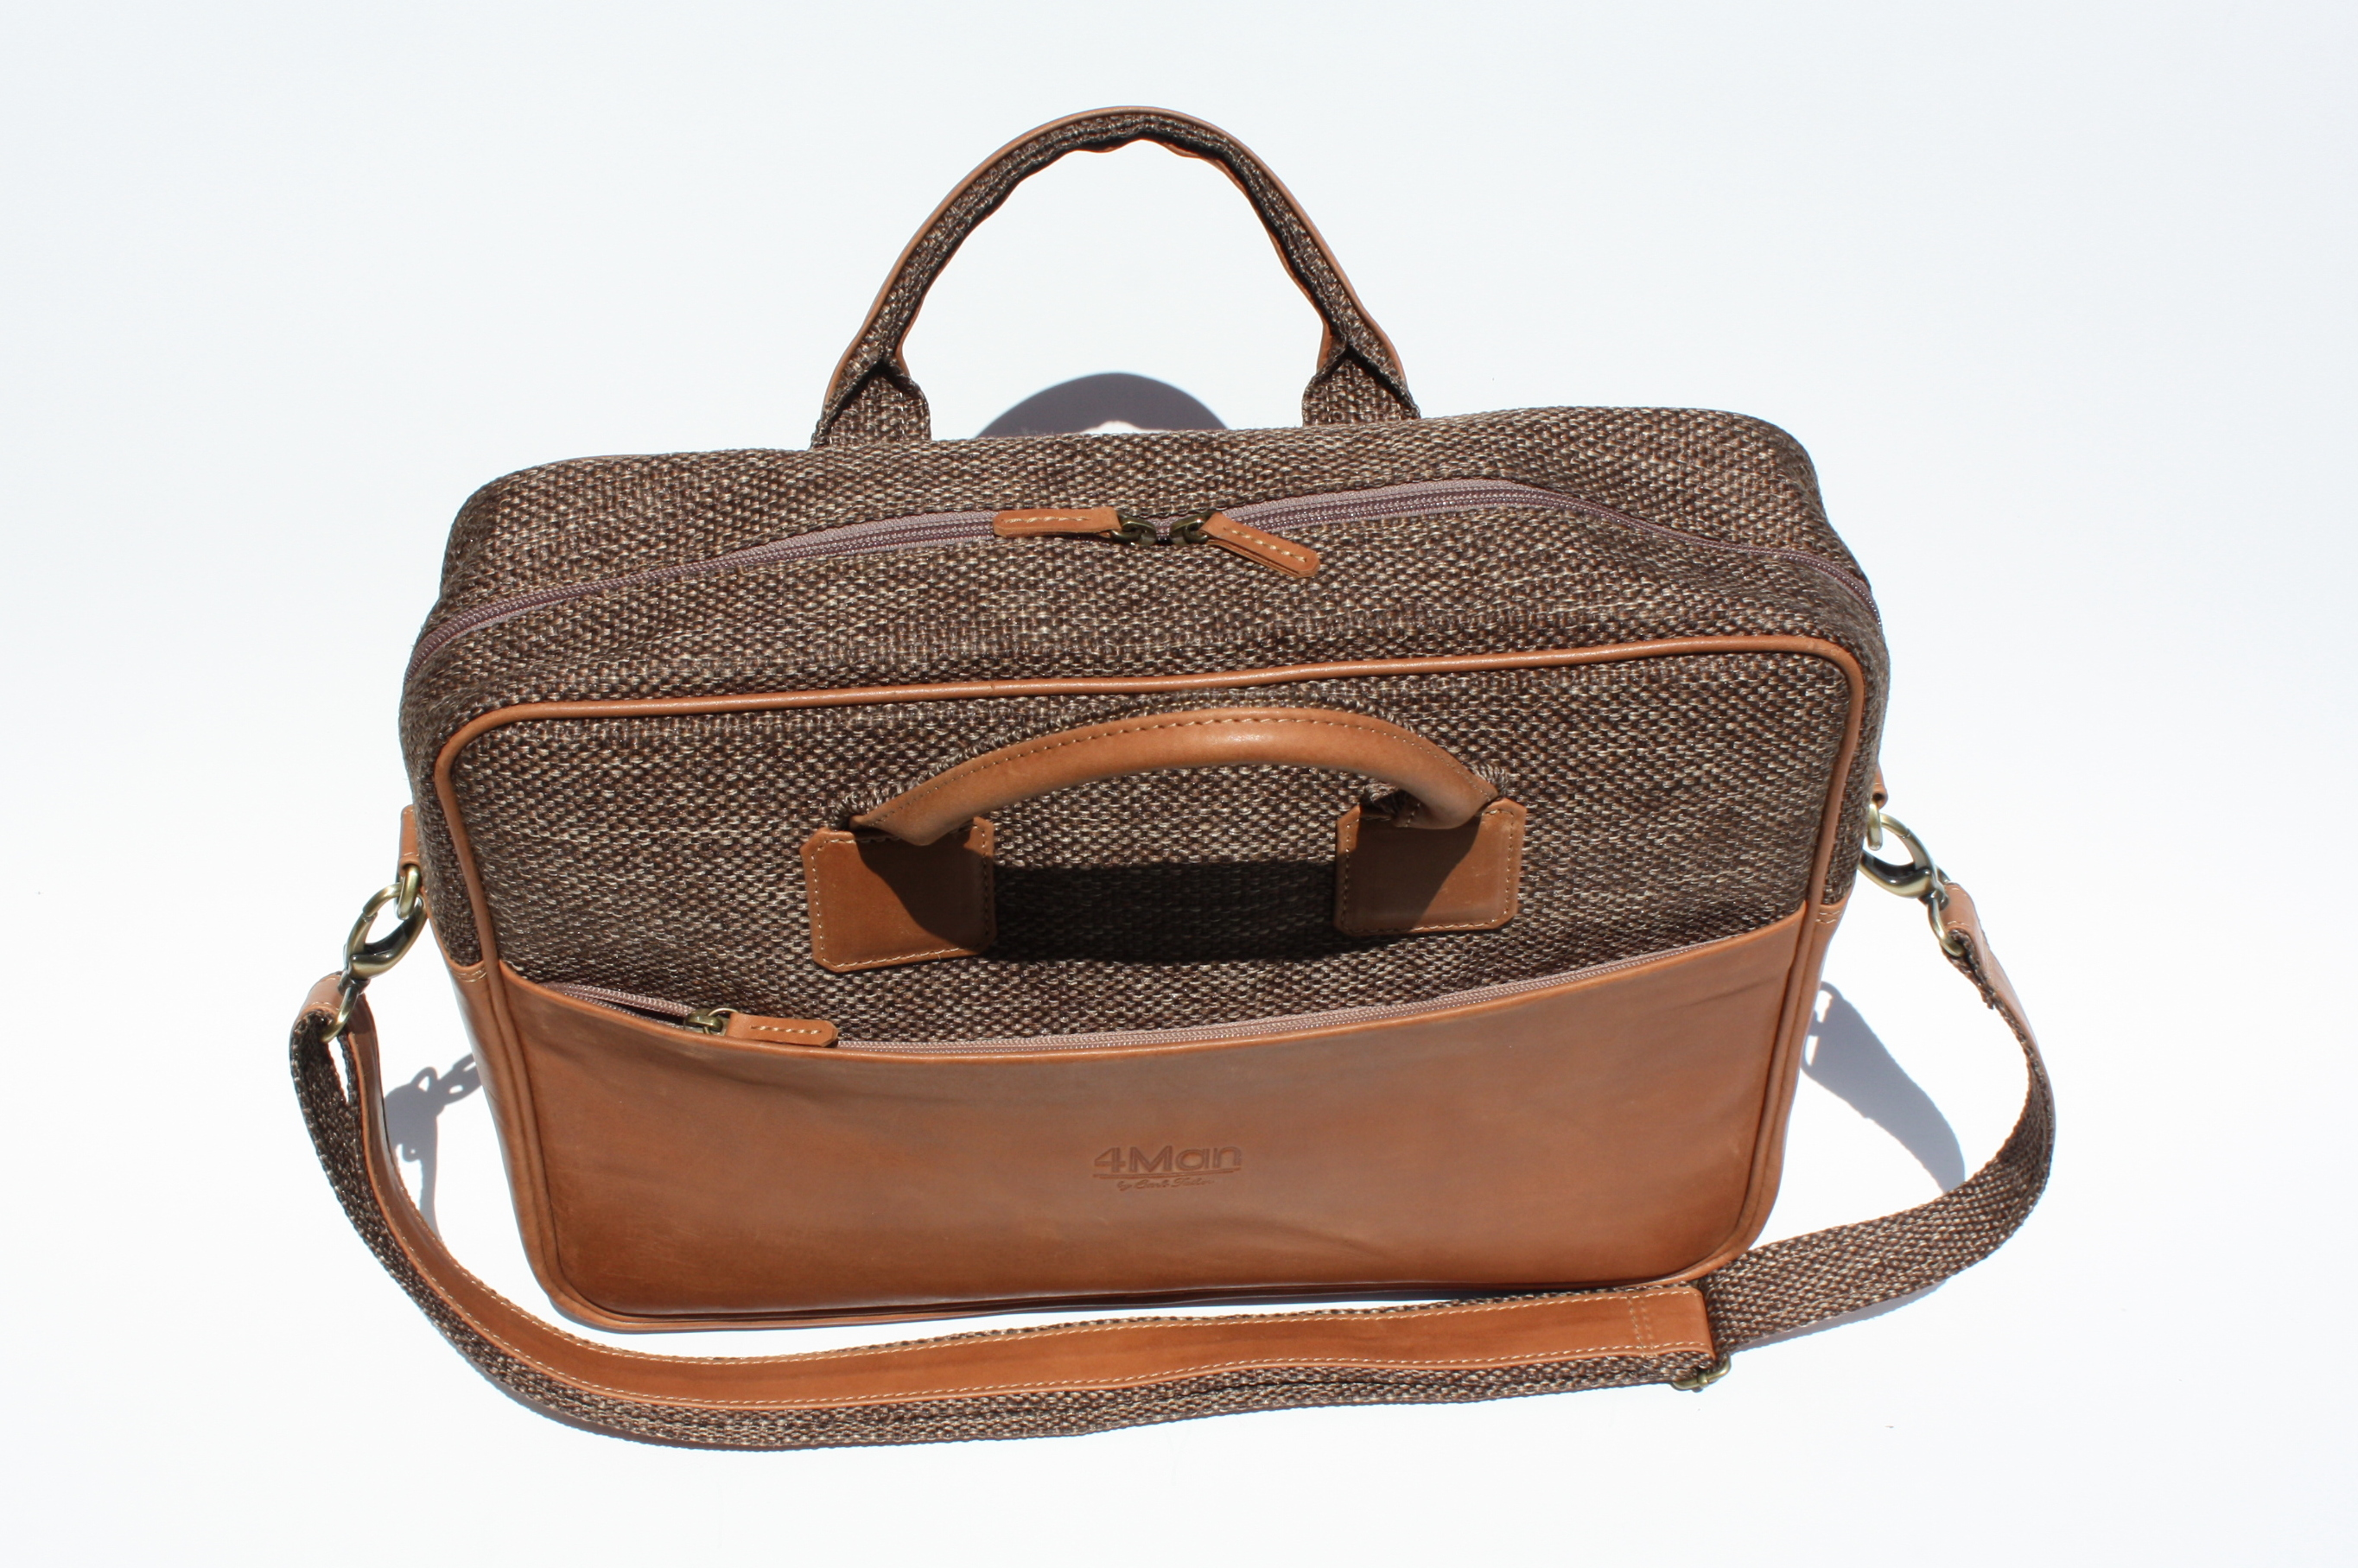 4Man laptop bag